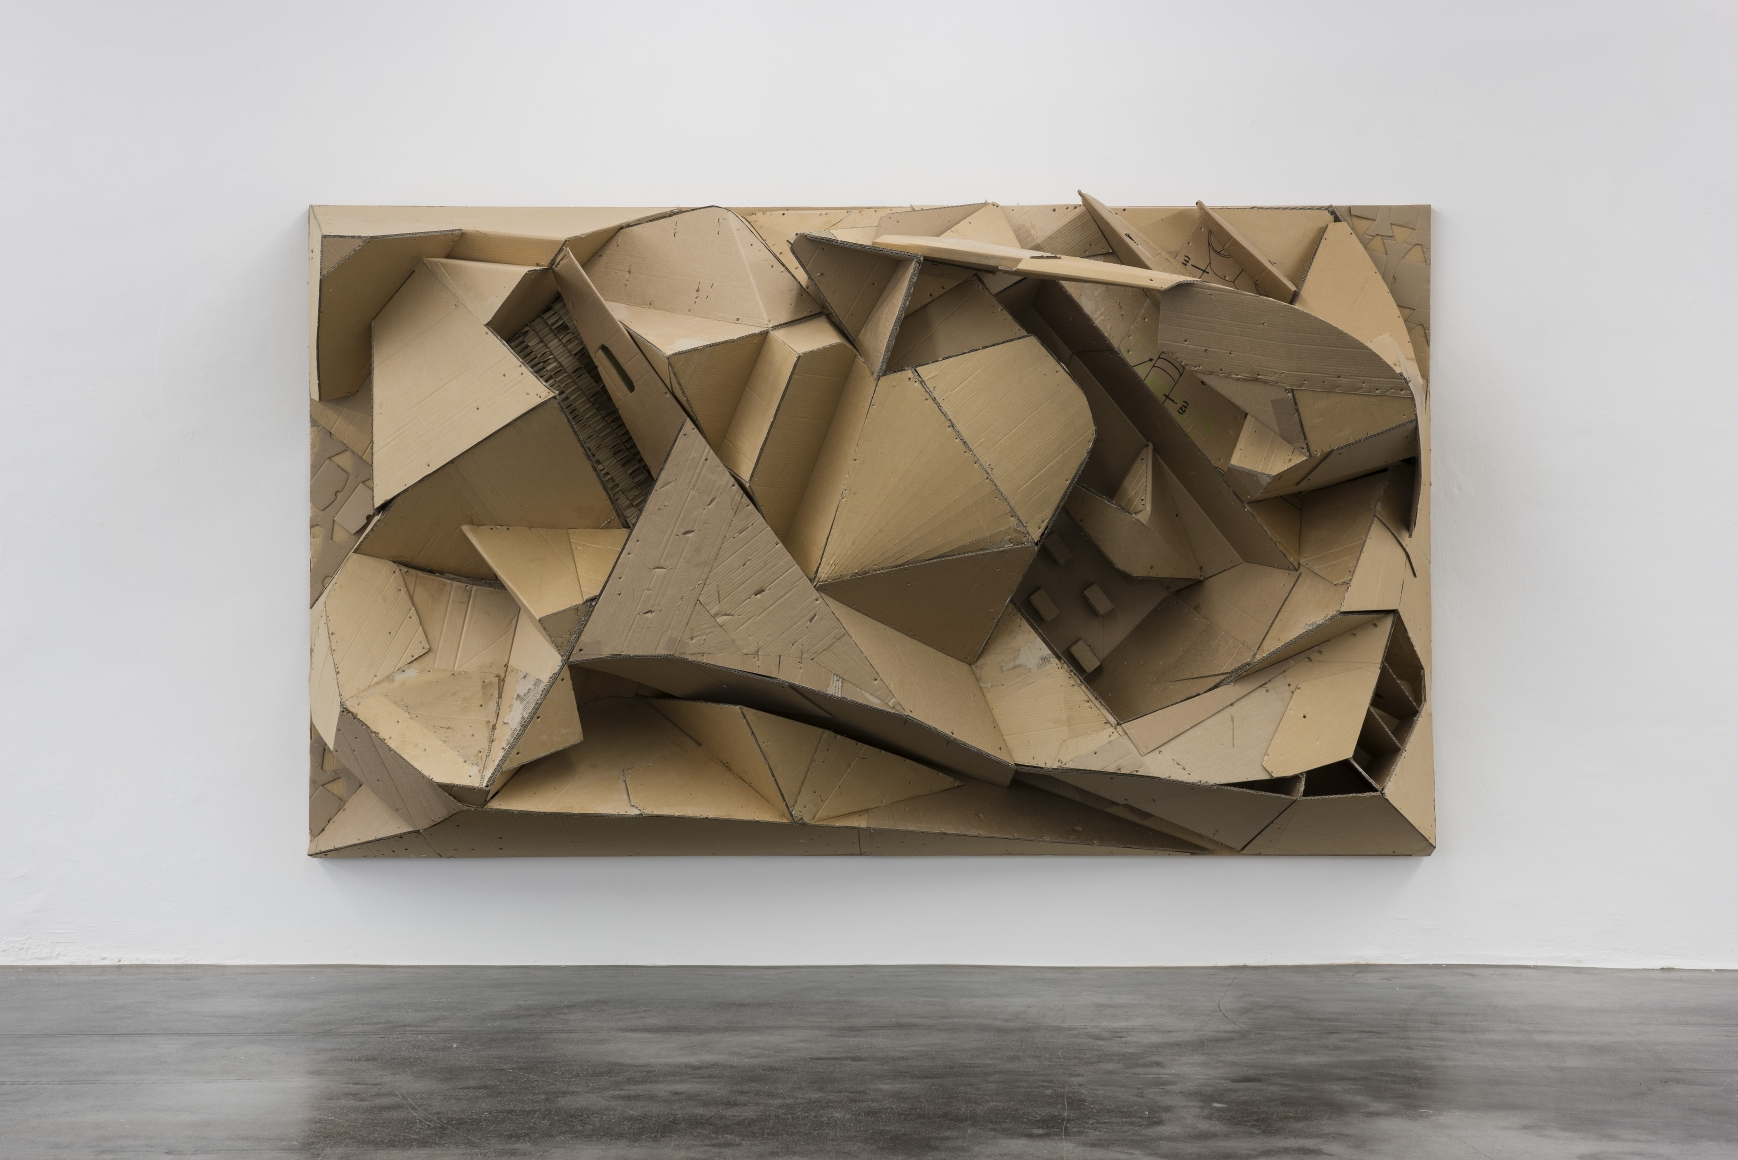 Florian Baudrexel, Ronic, 2016, cardboard on wooden frame, 73 × 126 × 35 in.